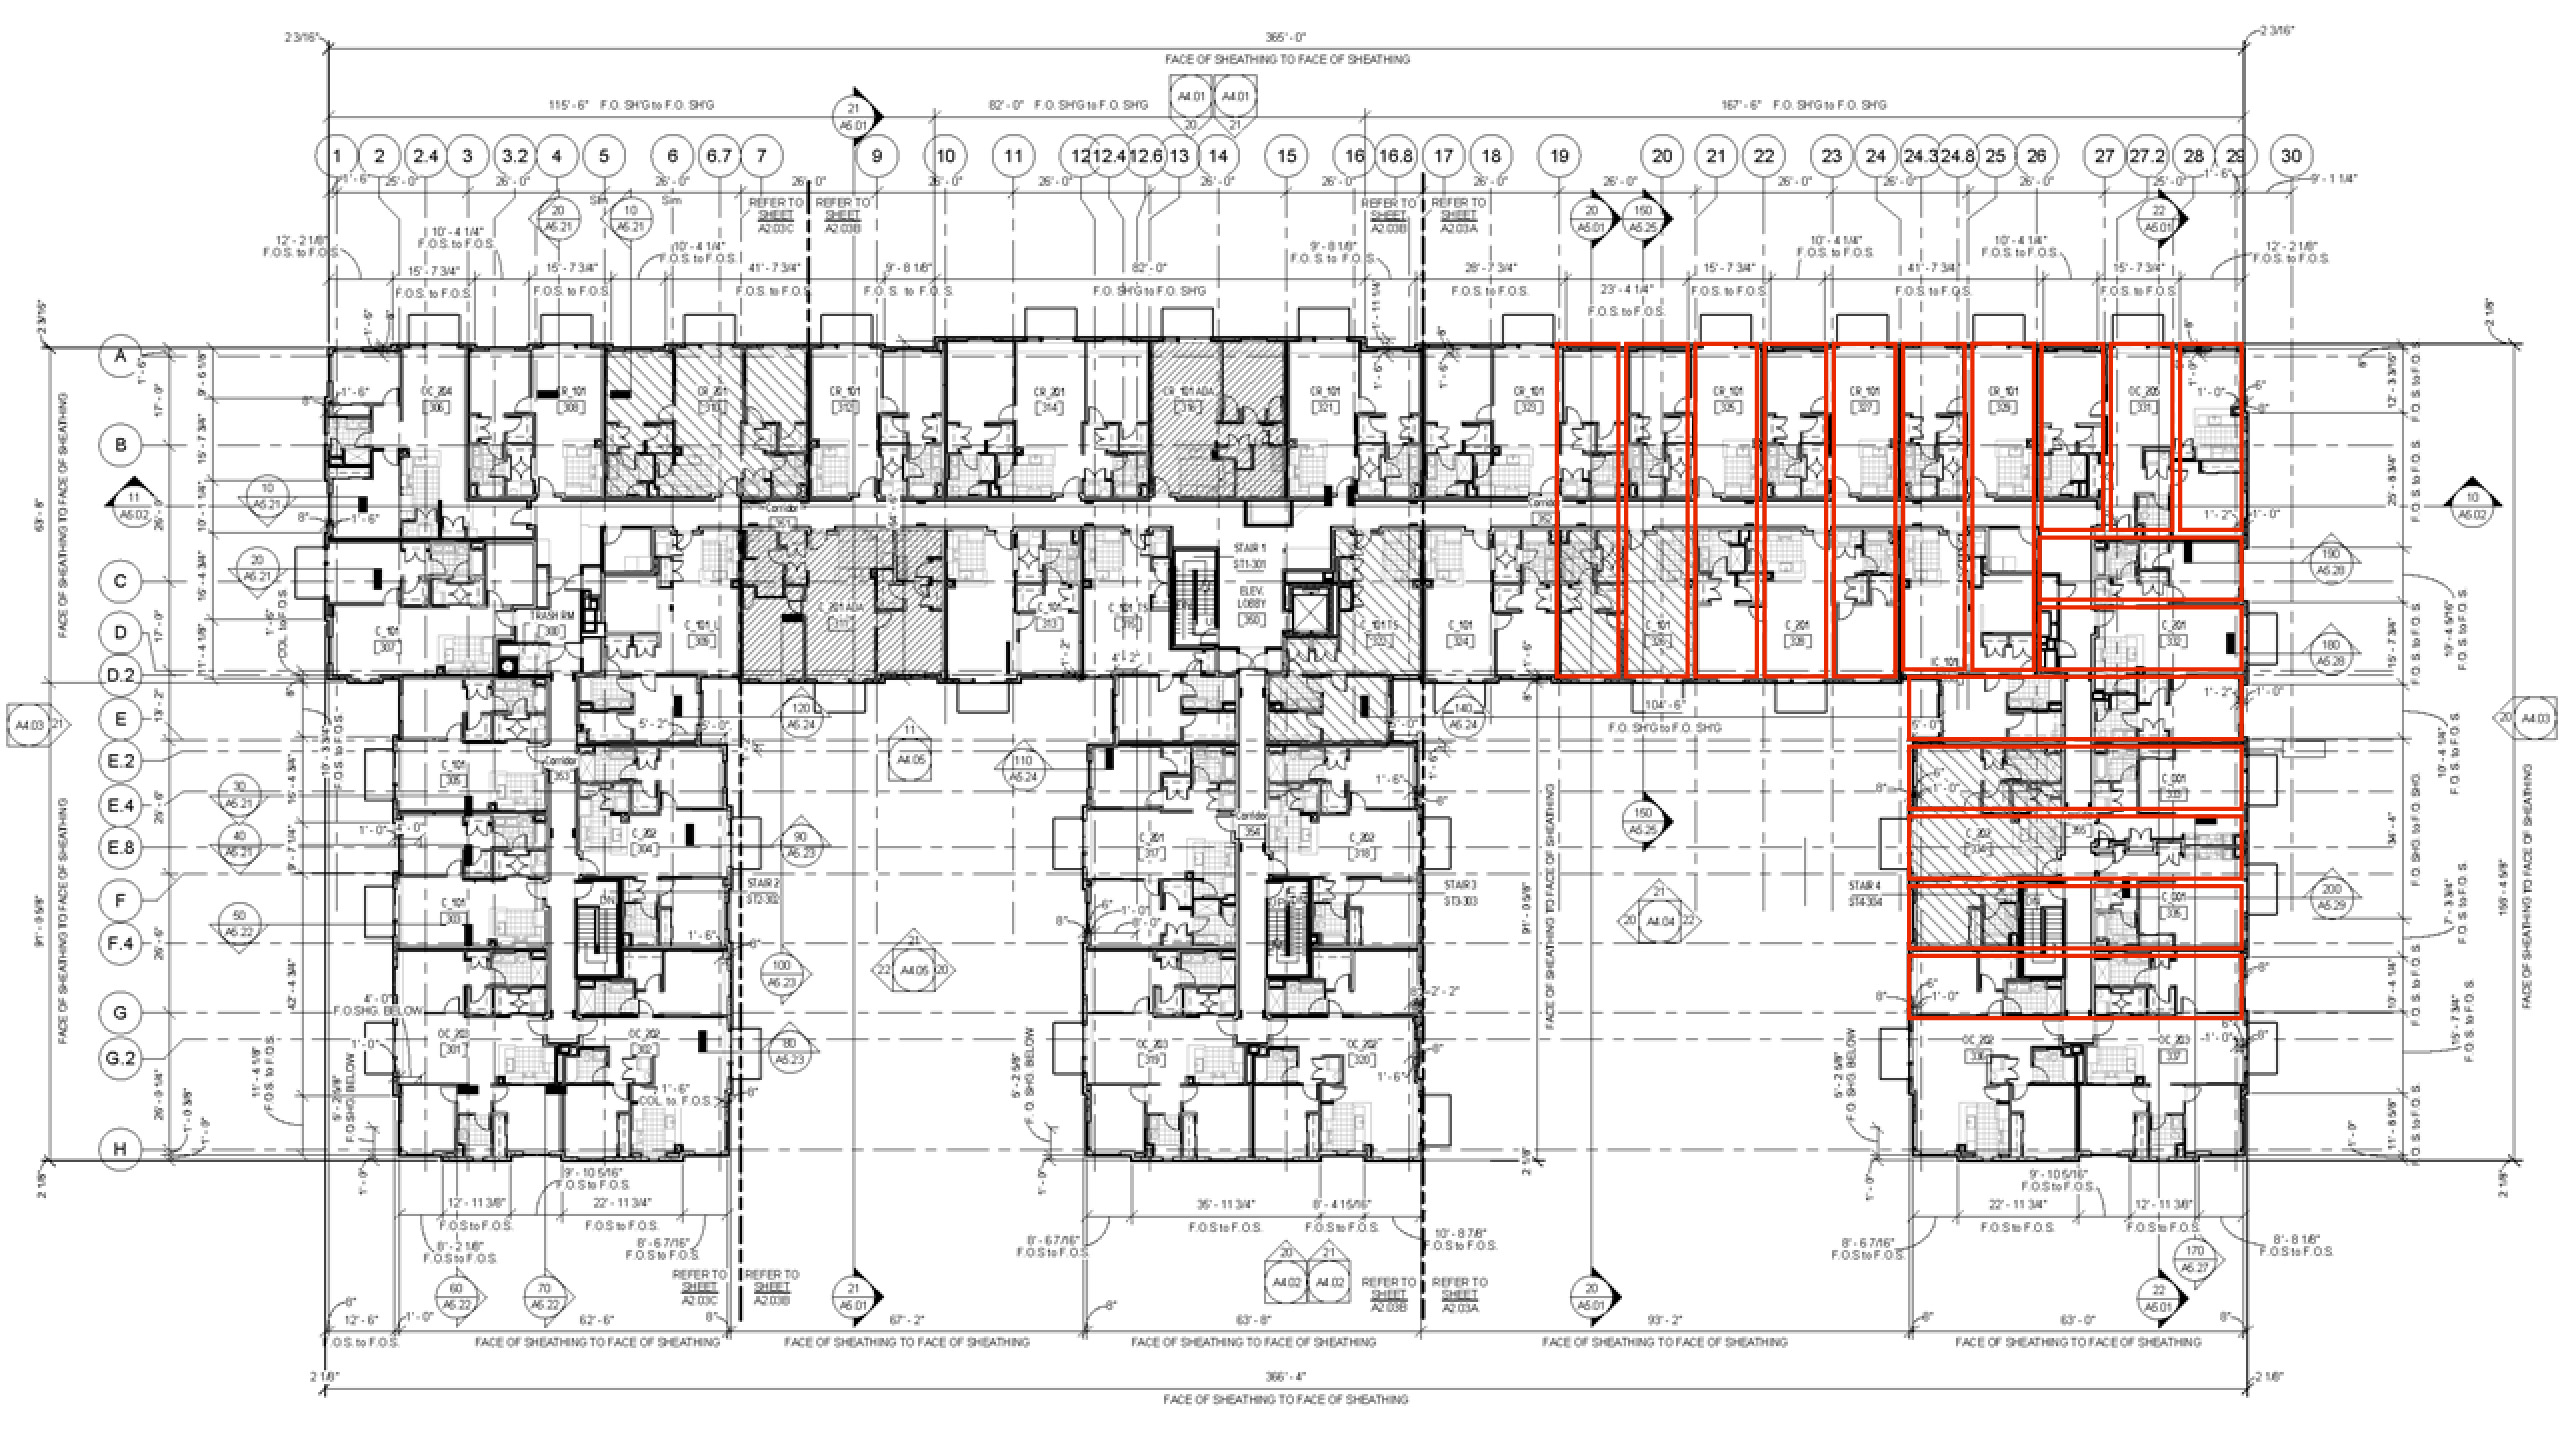 Arch_FloorPlan_REDBOXES